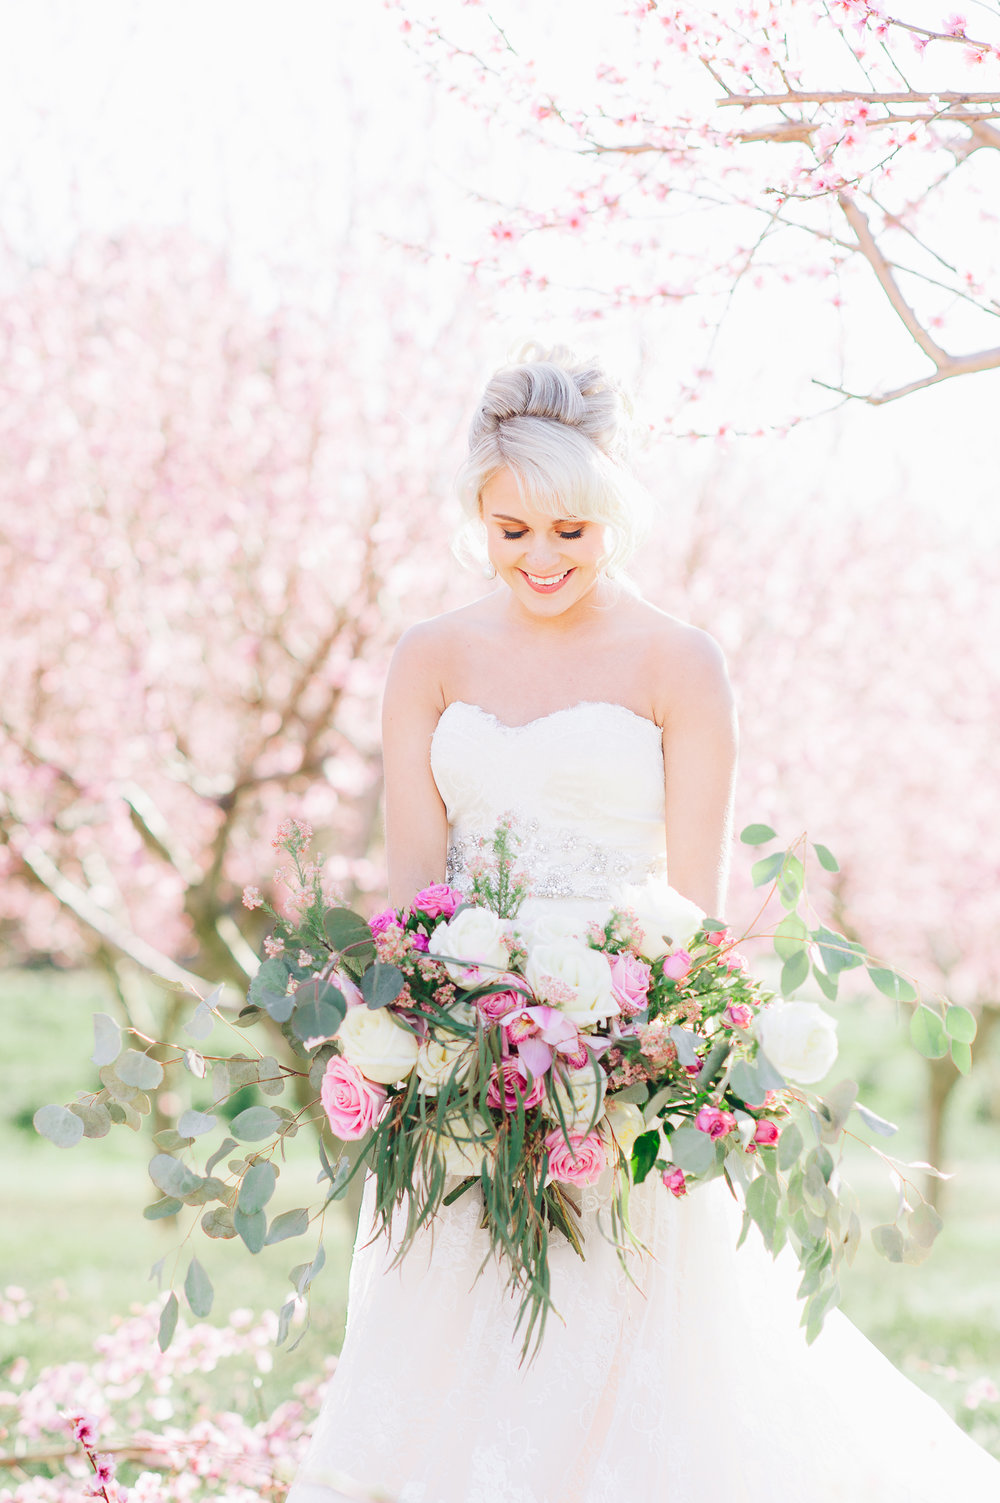 youseephotography_virginia_styledshoot_springwedding_blossoms  (14).jpg